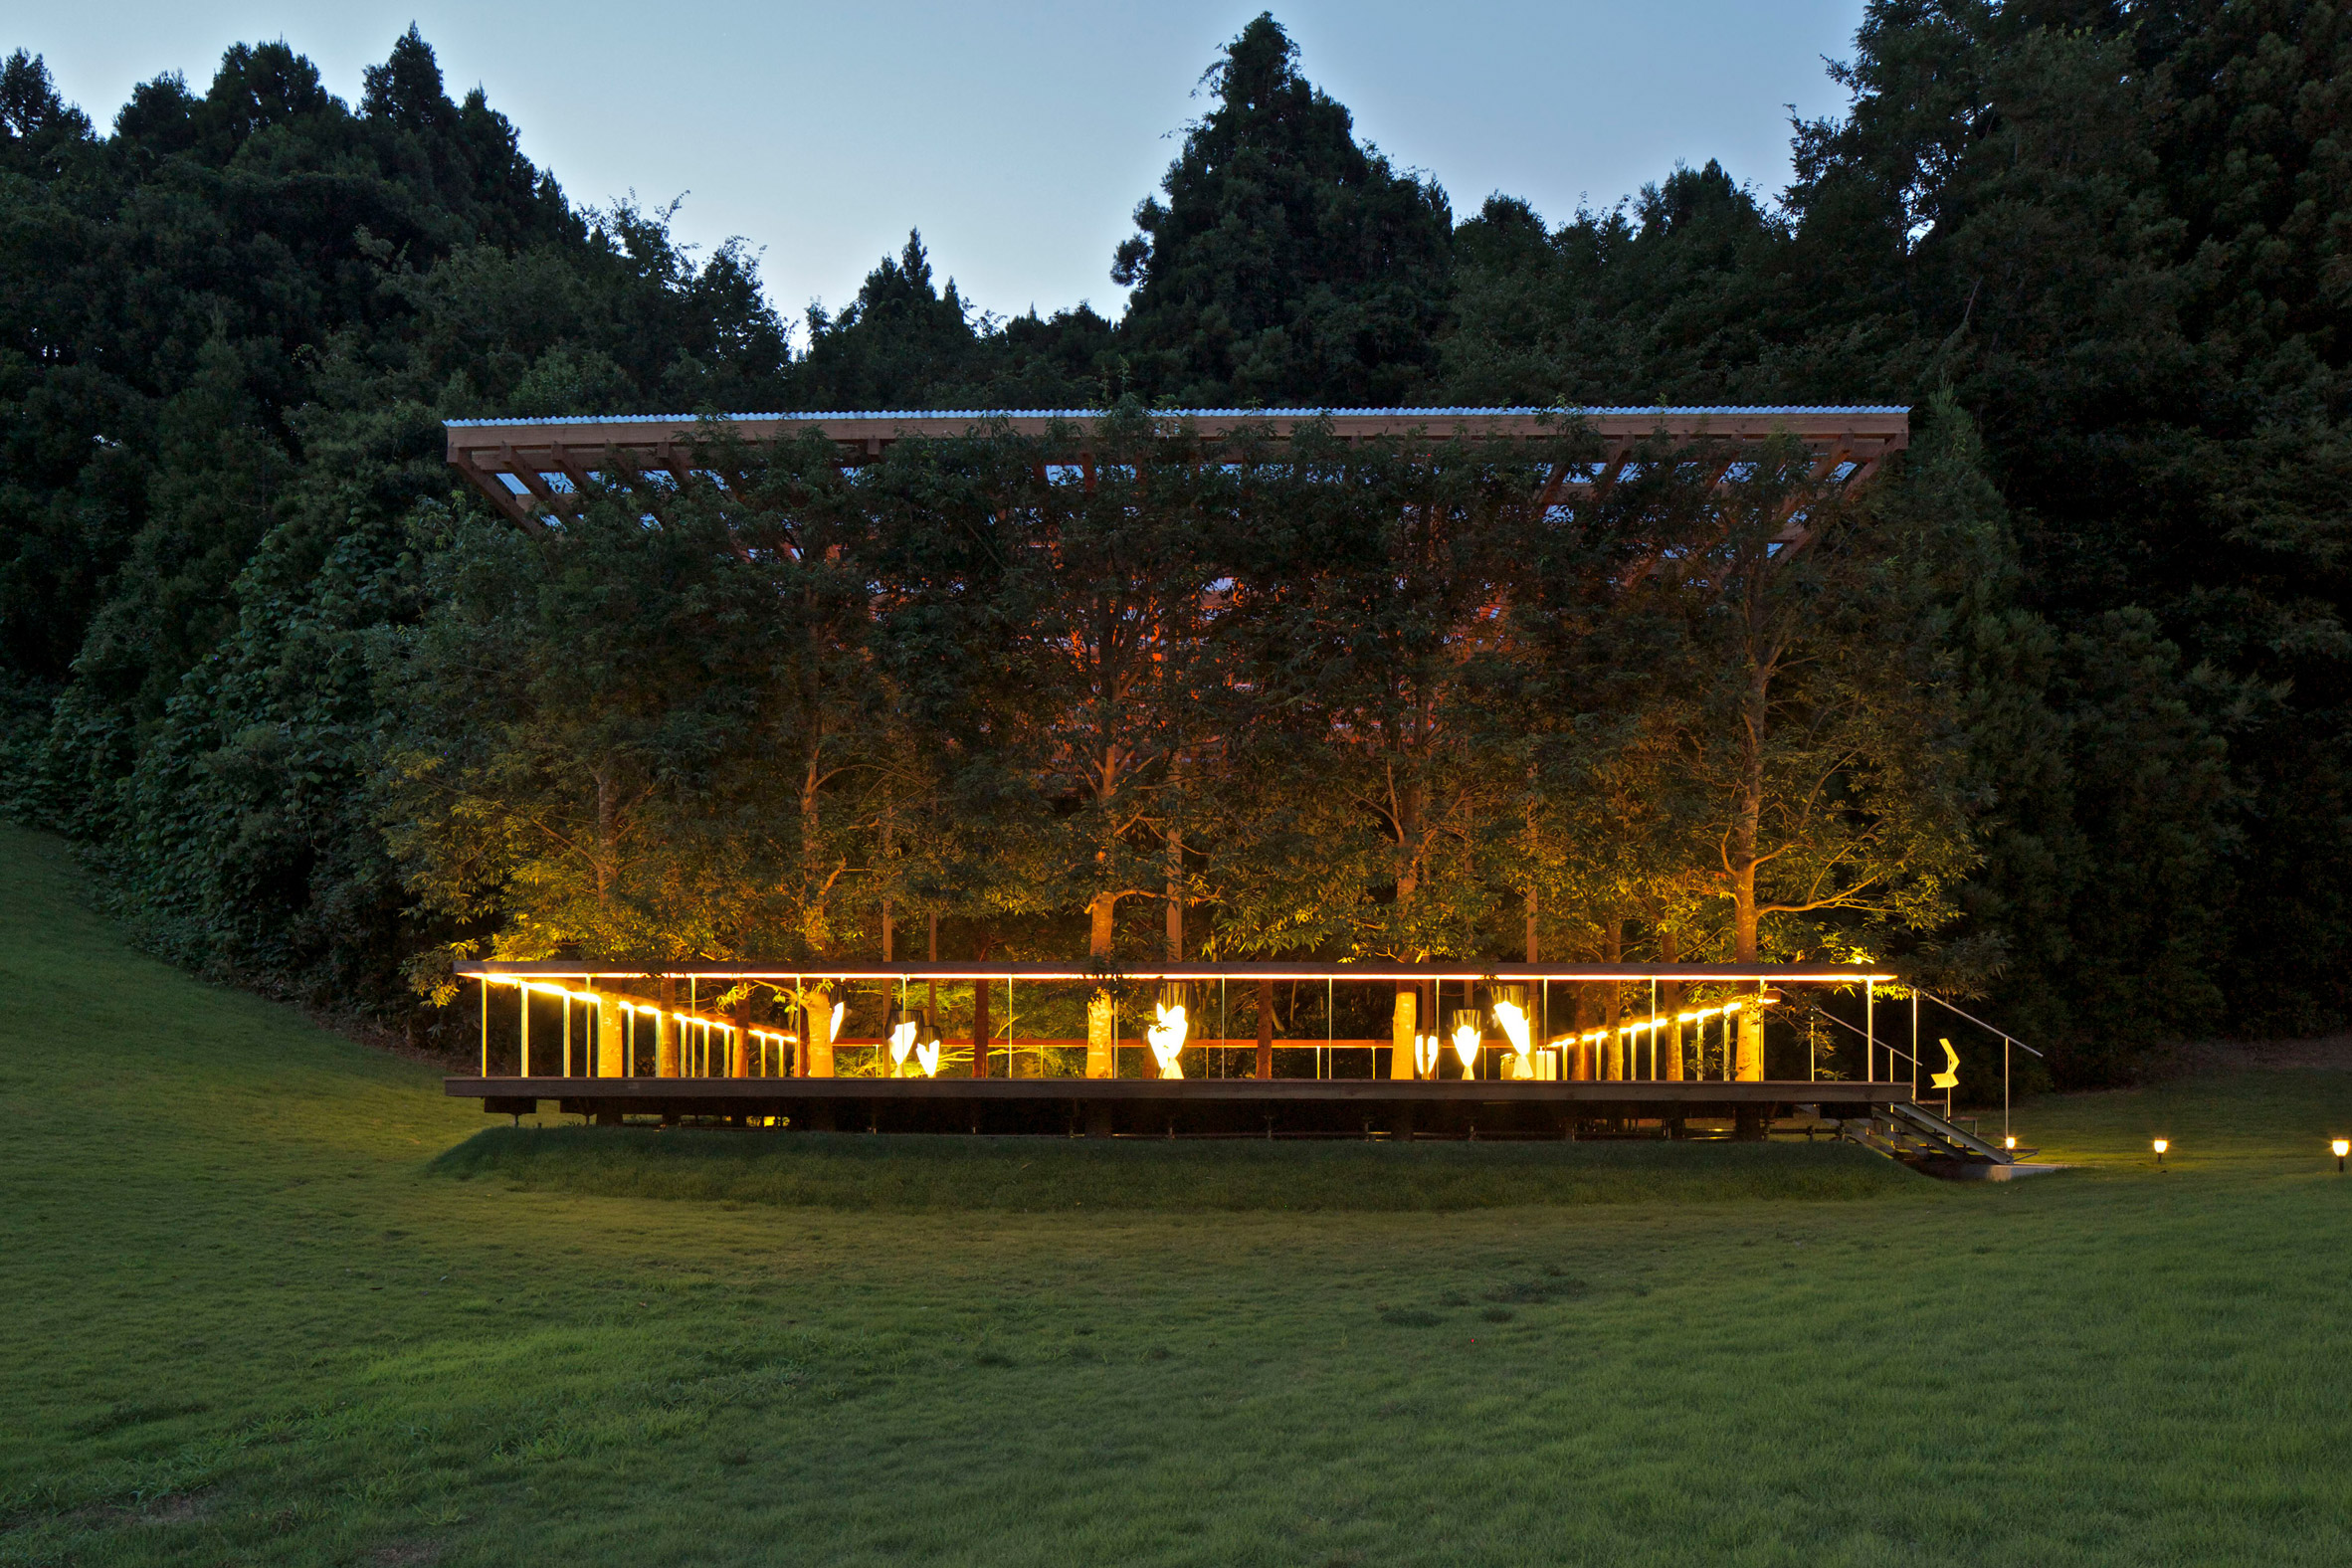 white-arbor-and-open-air-theater-apl-design-workshop-architecture-japan_dezeen_2364_col_8